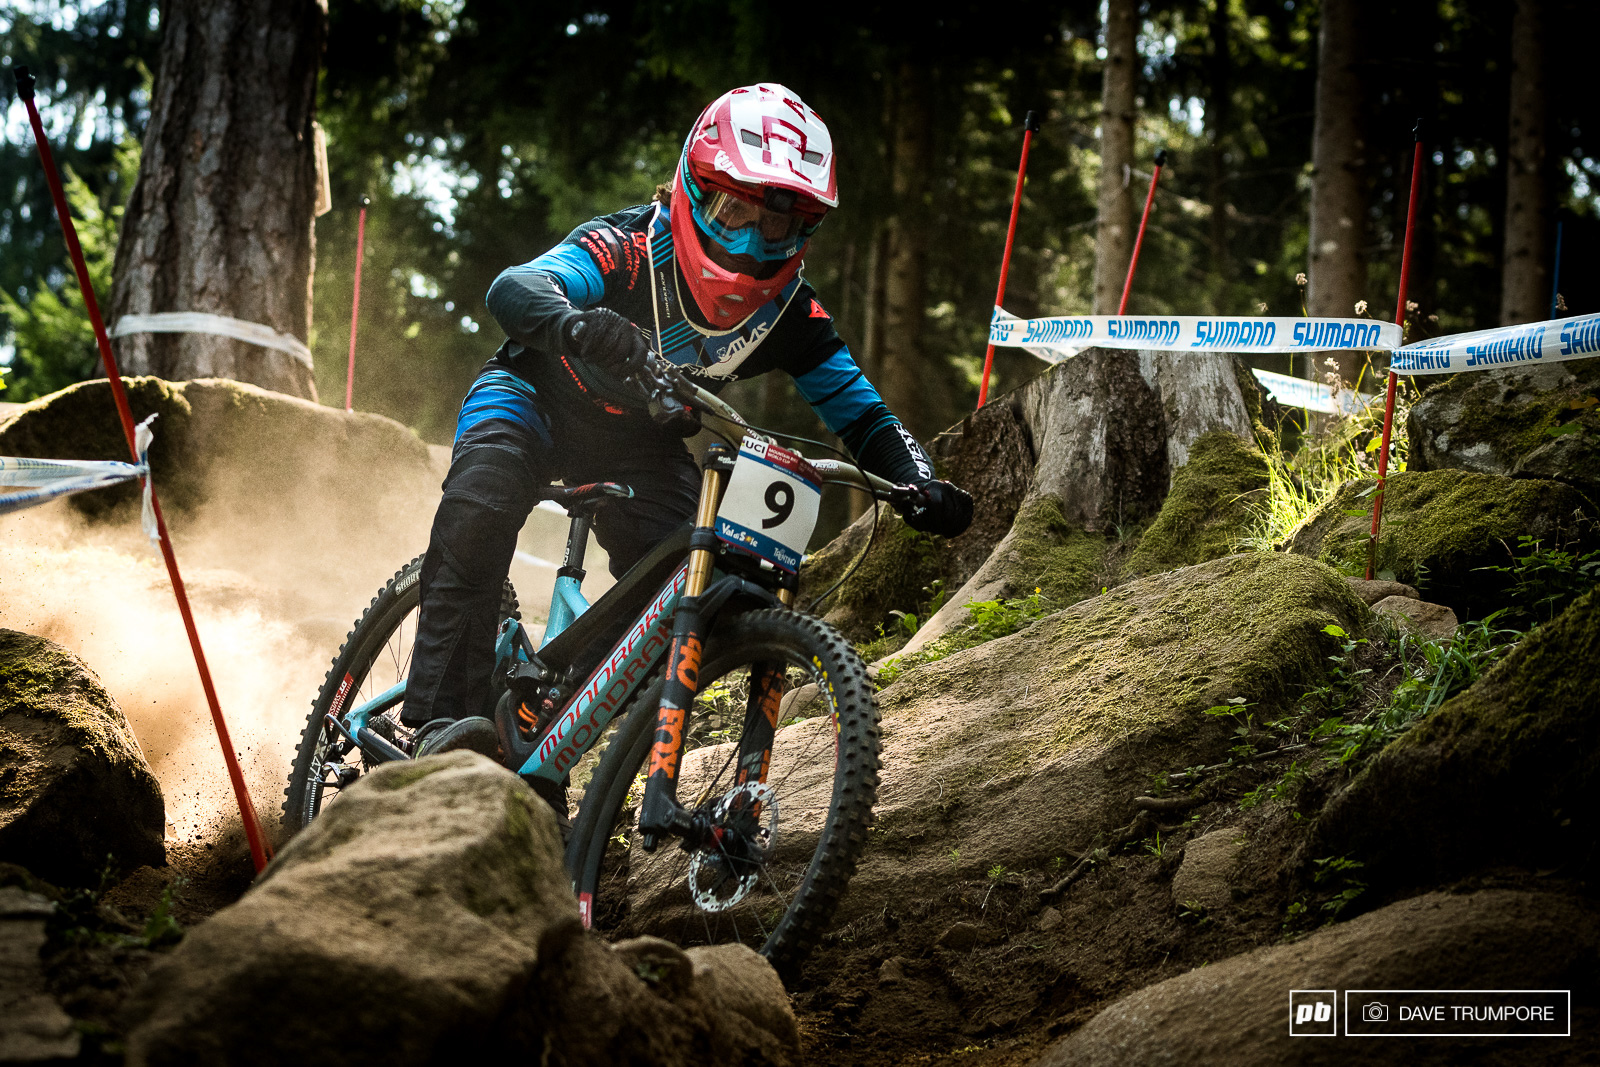 Laurie Greenland has always done well here in Val di Sole and would finish 4 seconds back and just one spot off the podium.